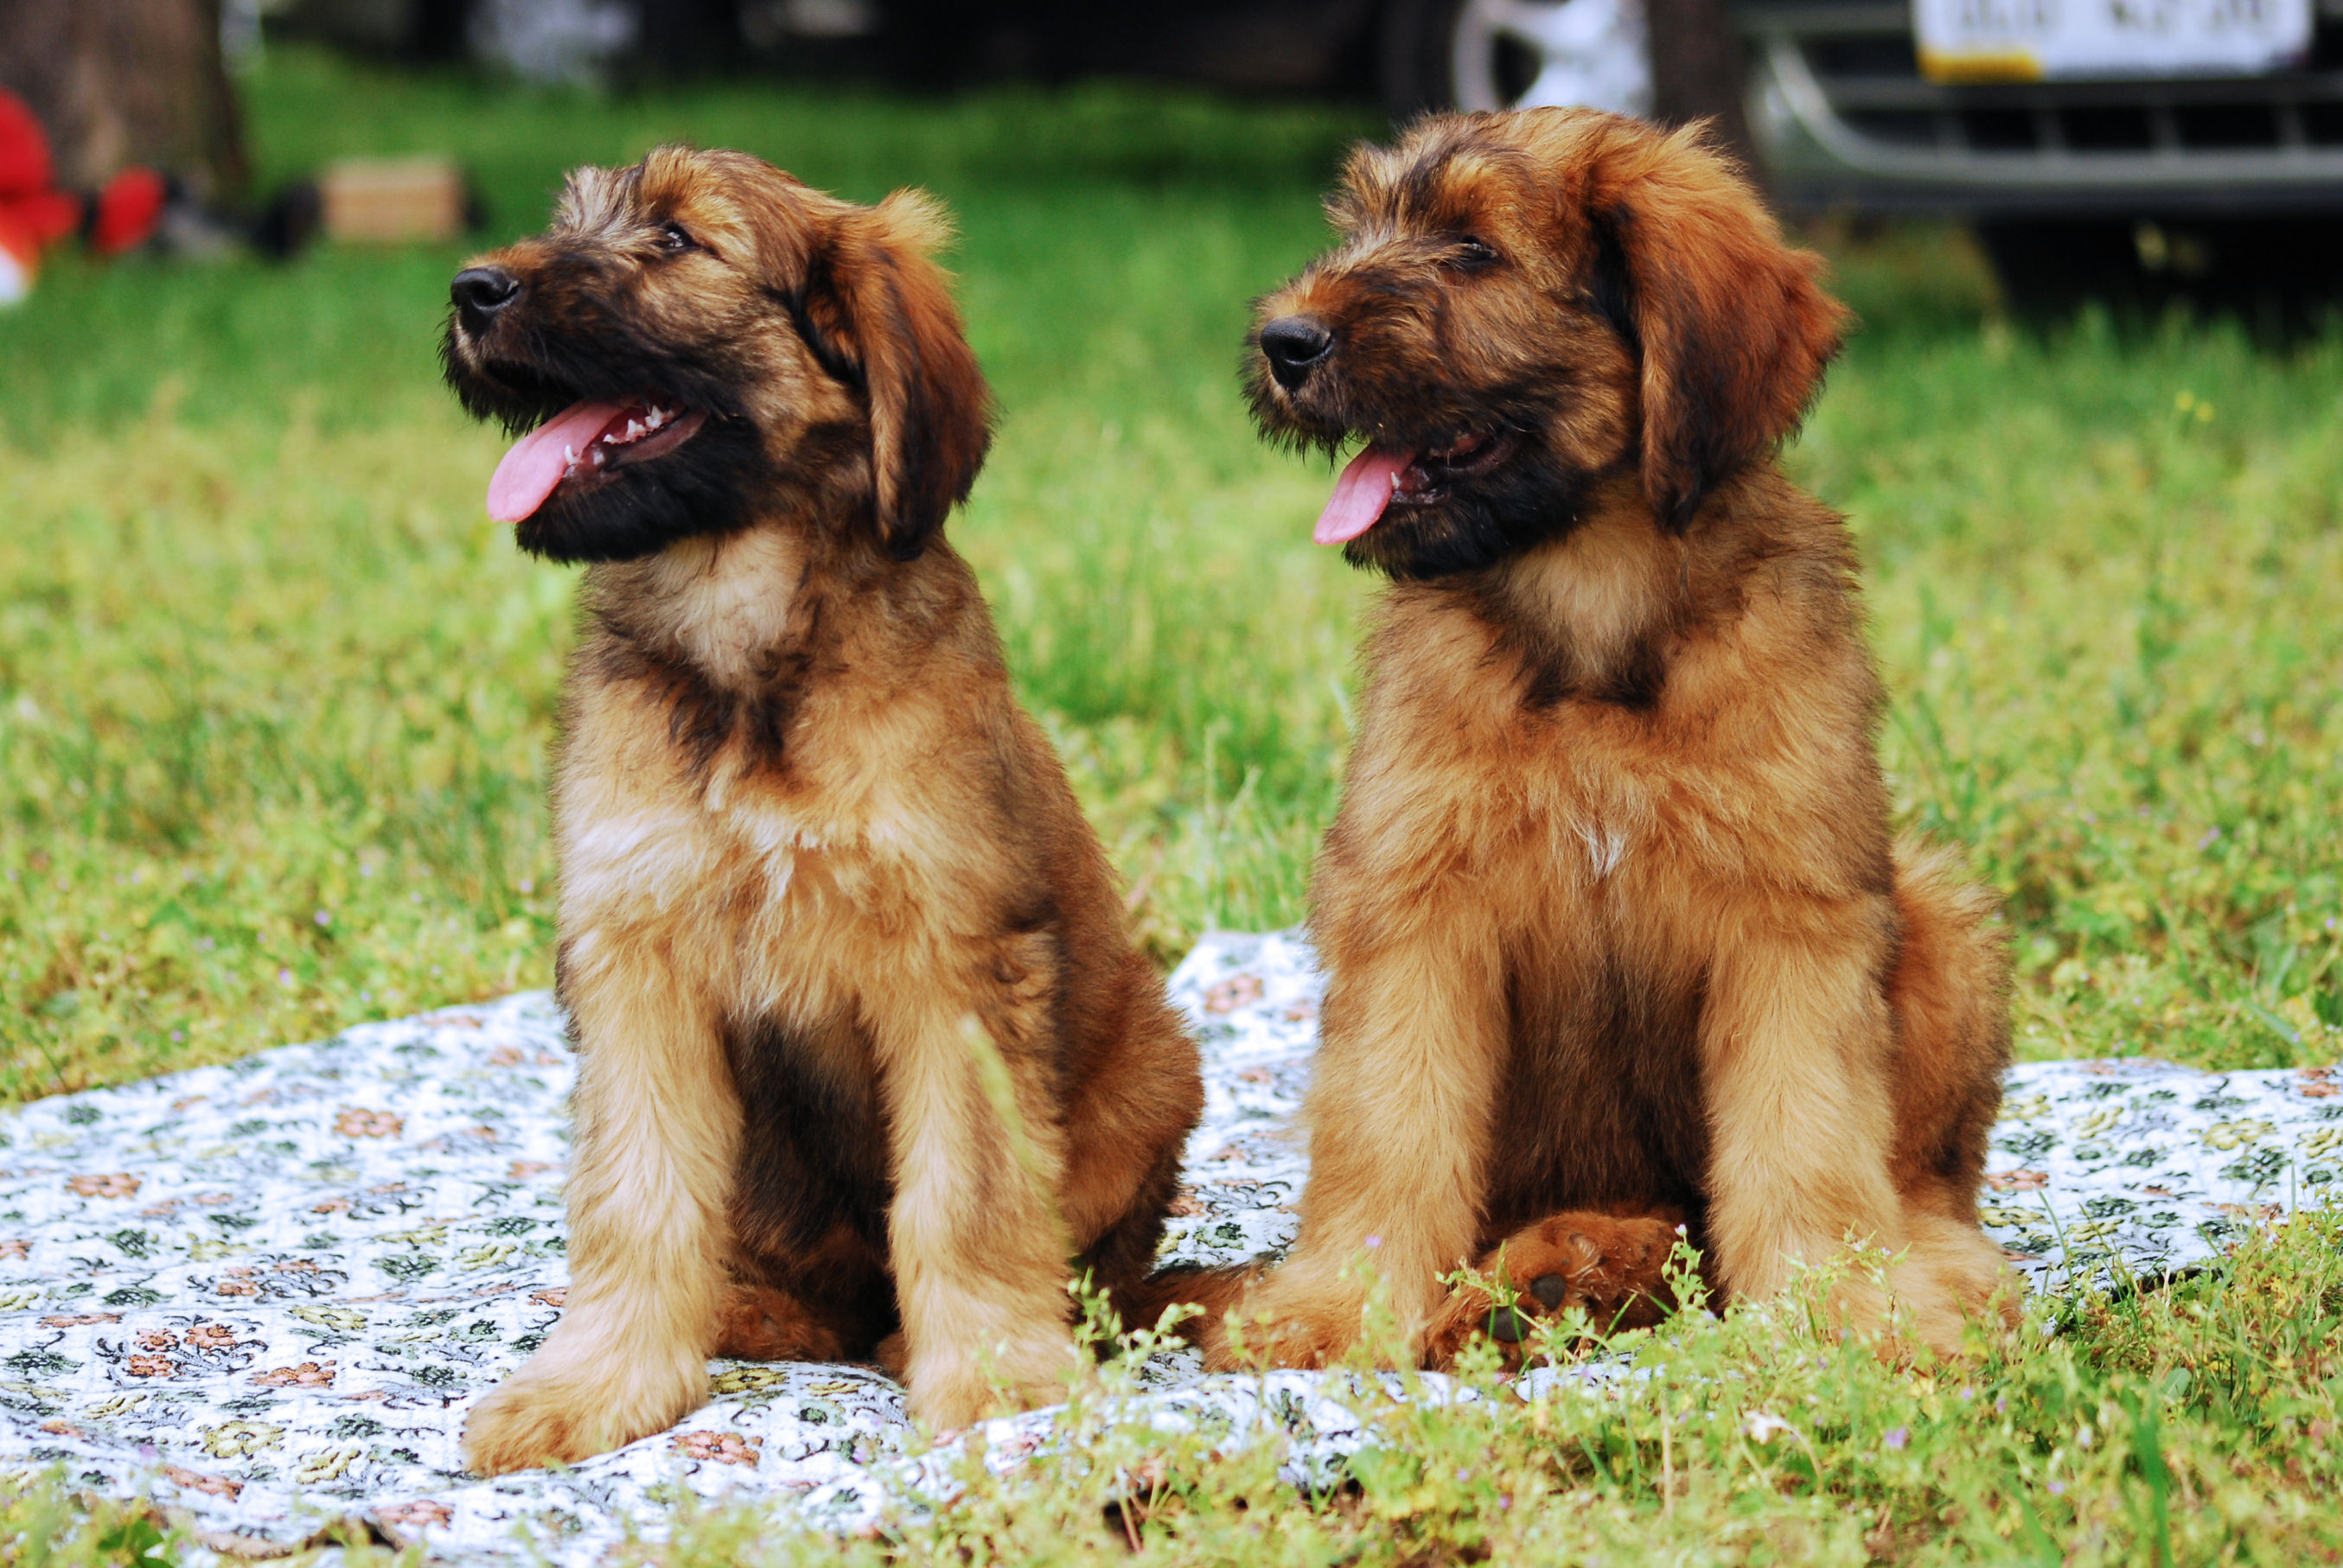 Black and tawny Briard dogs wallpaper